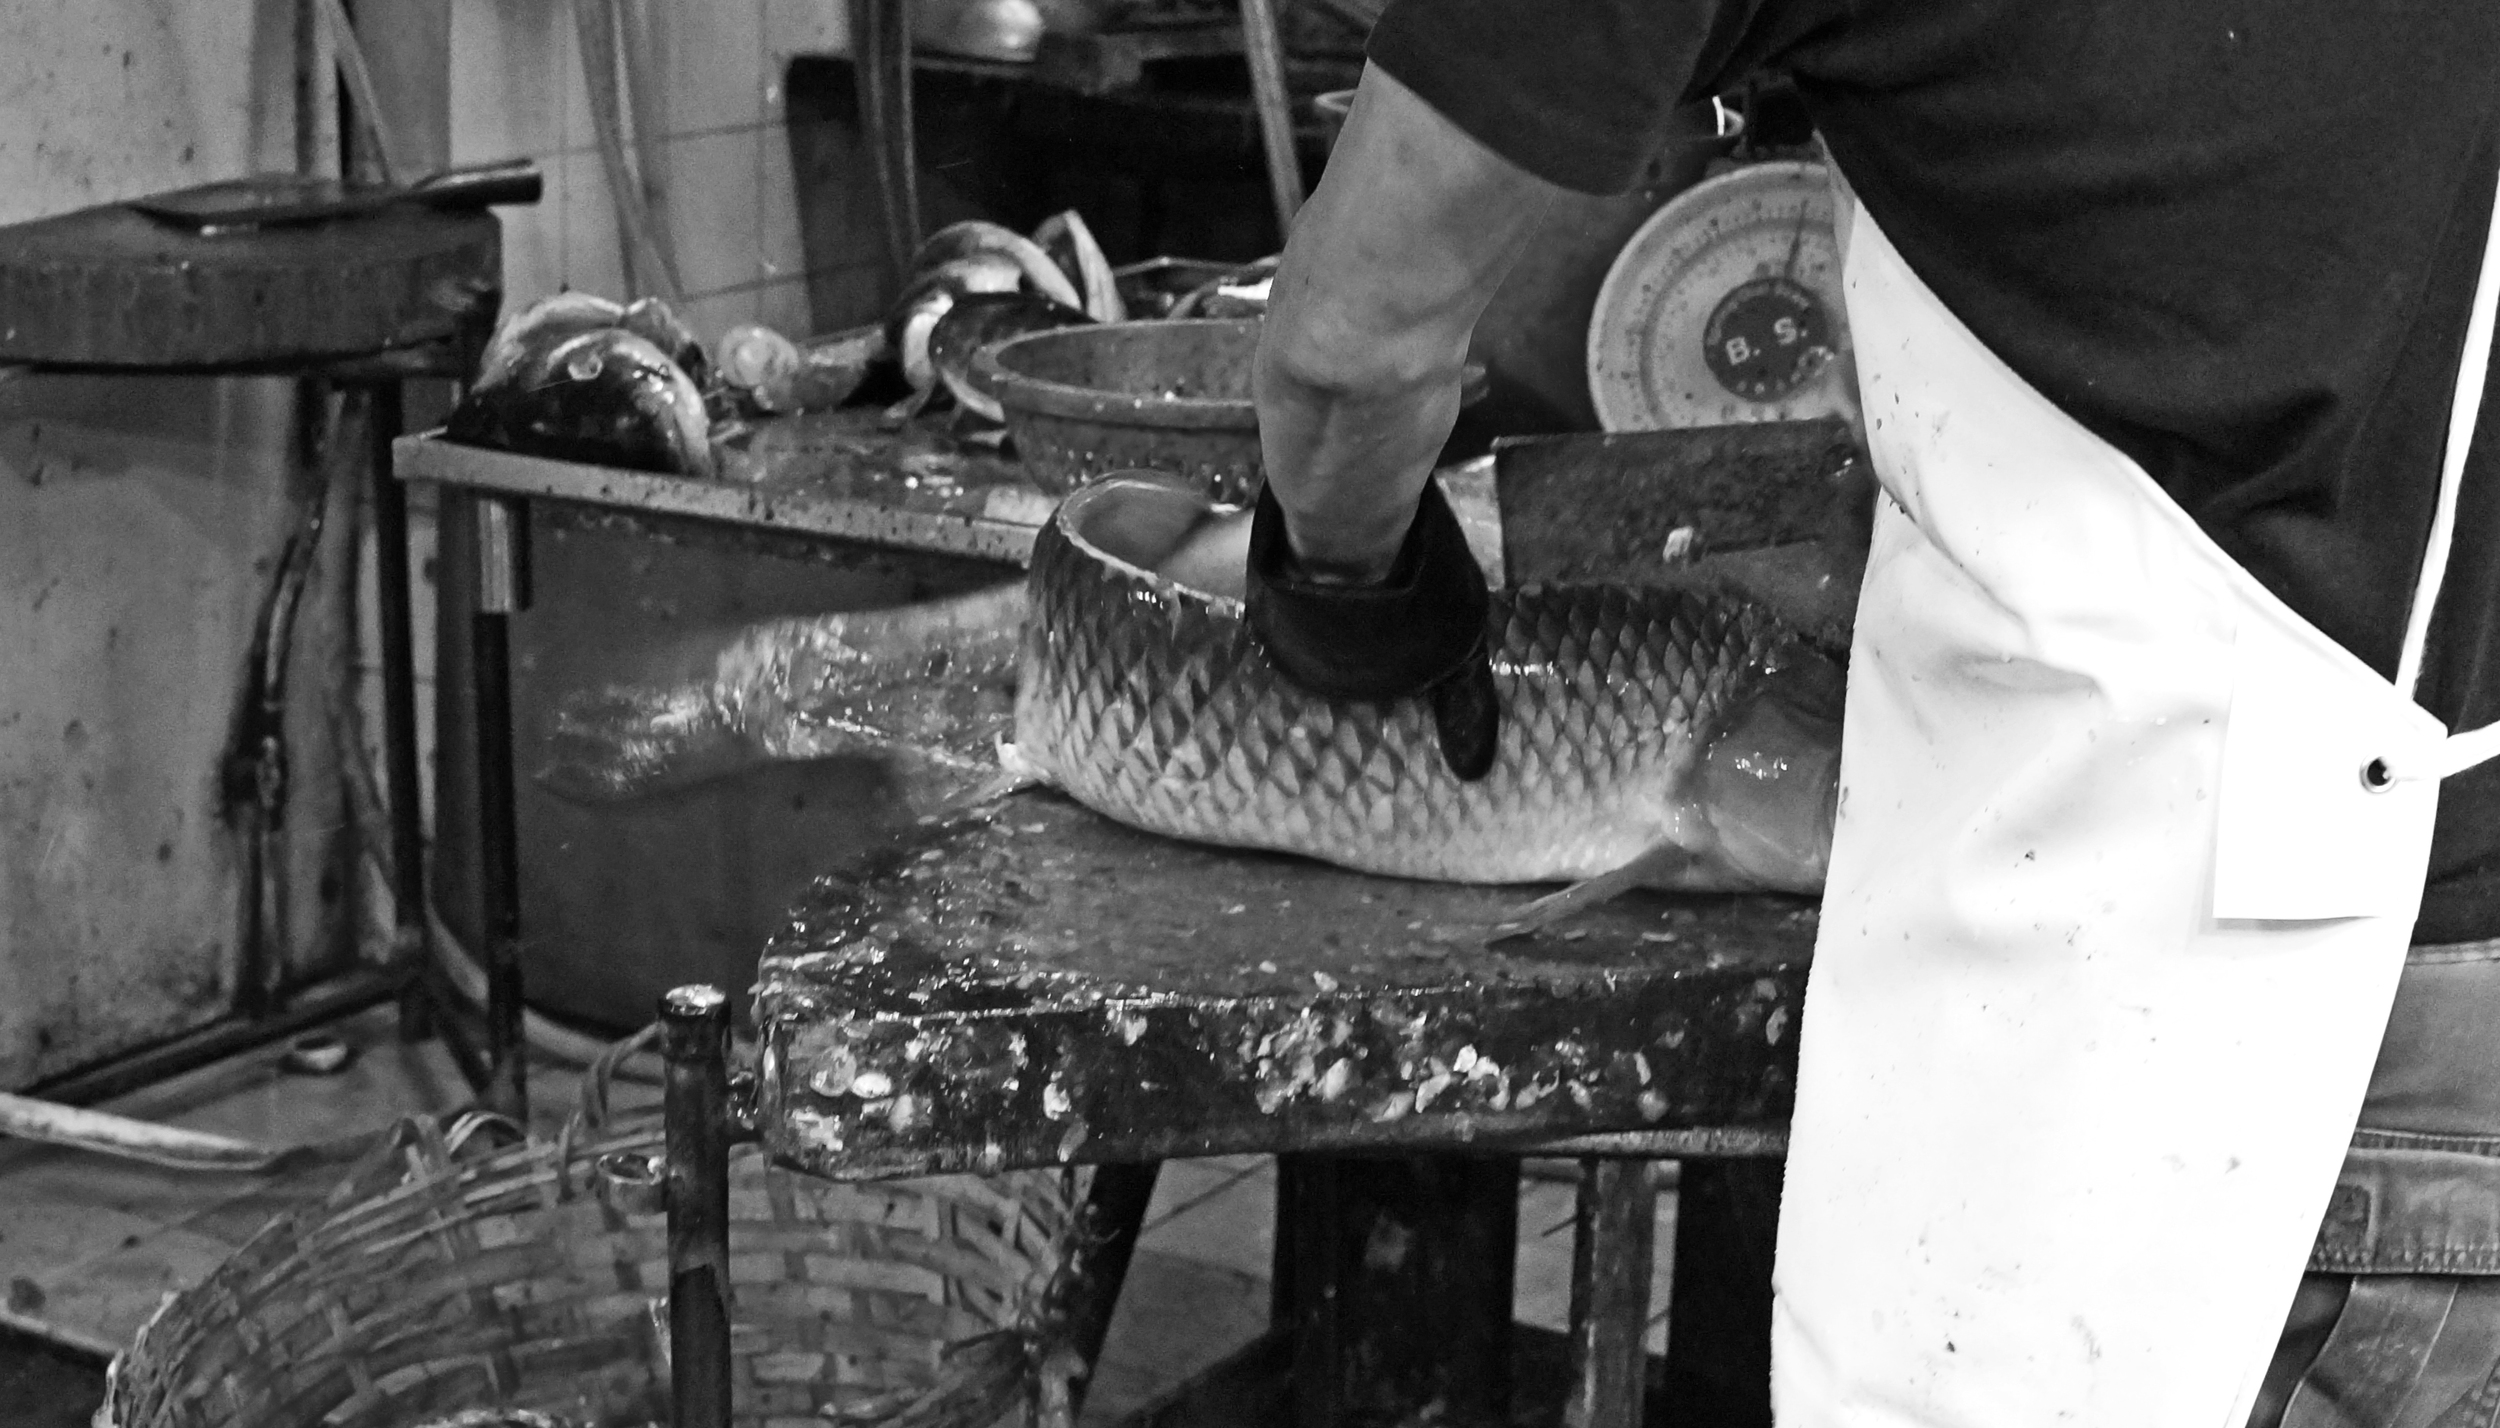 A grainy, gritty black and white image from a gritty place - Mong Kok., oh... the fish is stunned and not quite dead when it is sliced and diced